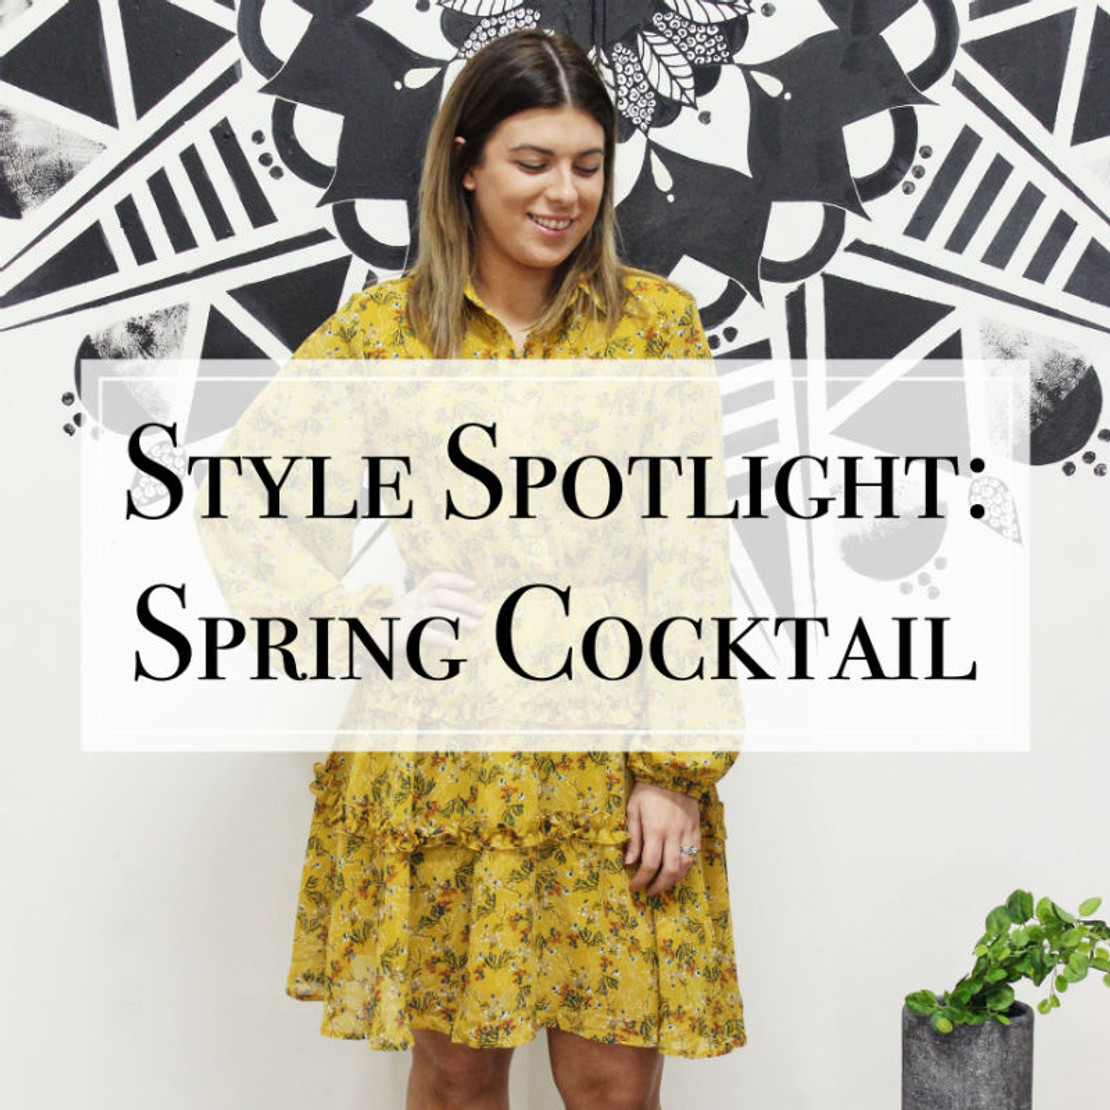 Style Spotlight: Spring Cocktail